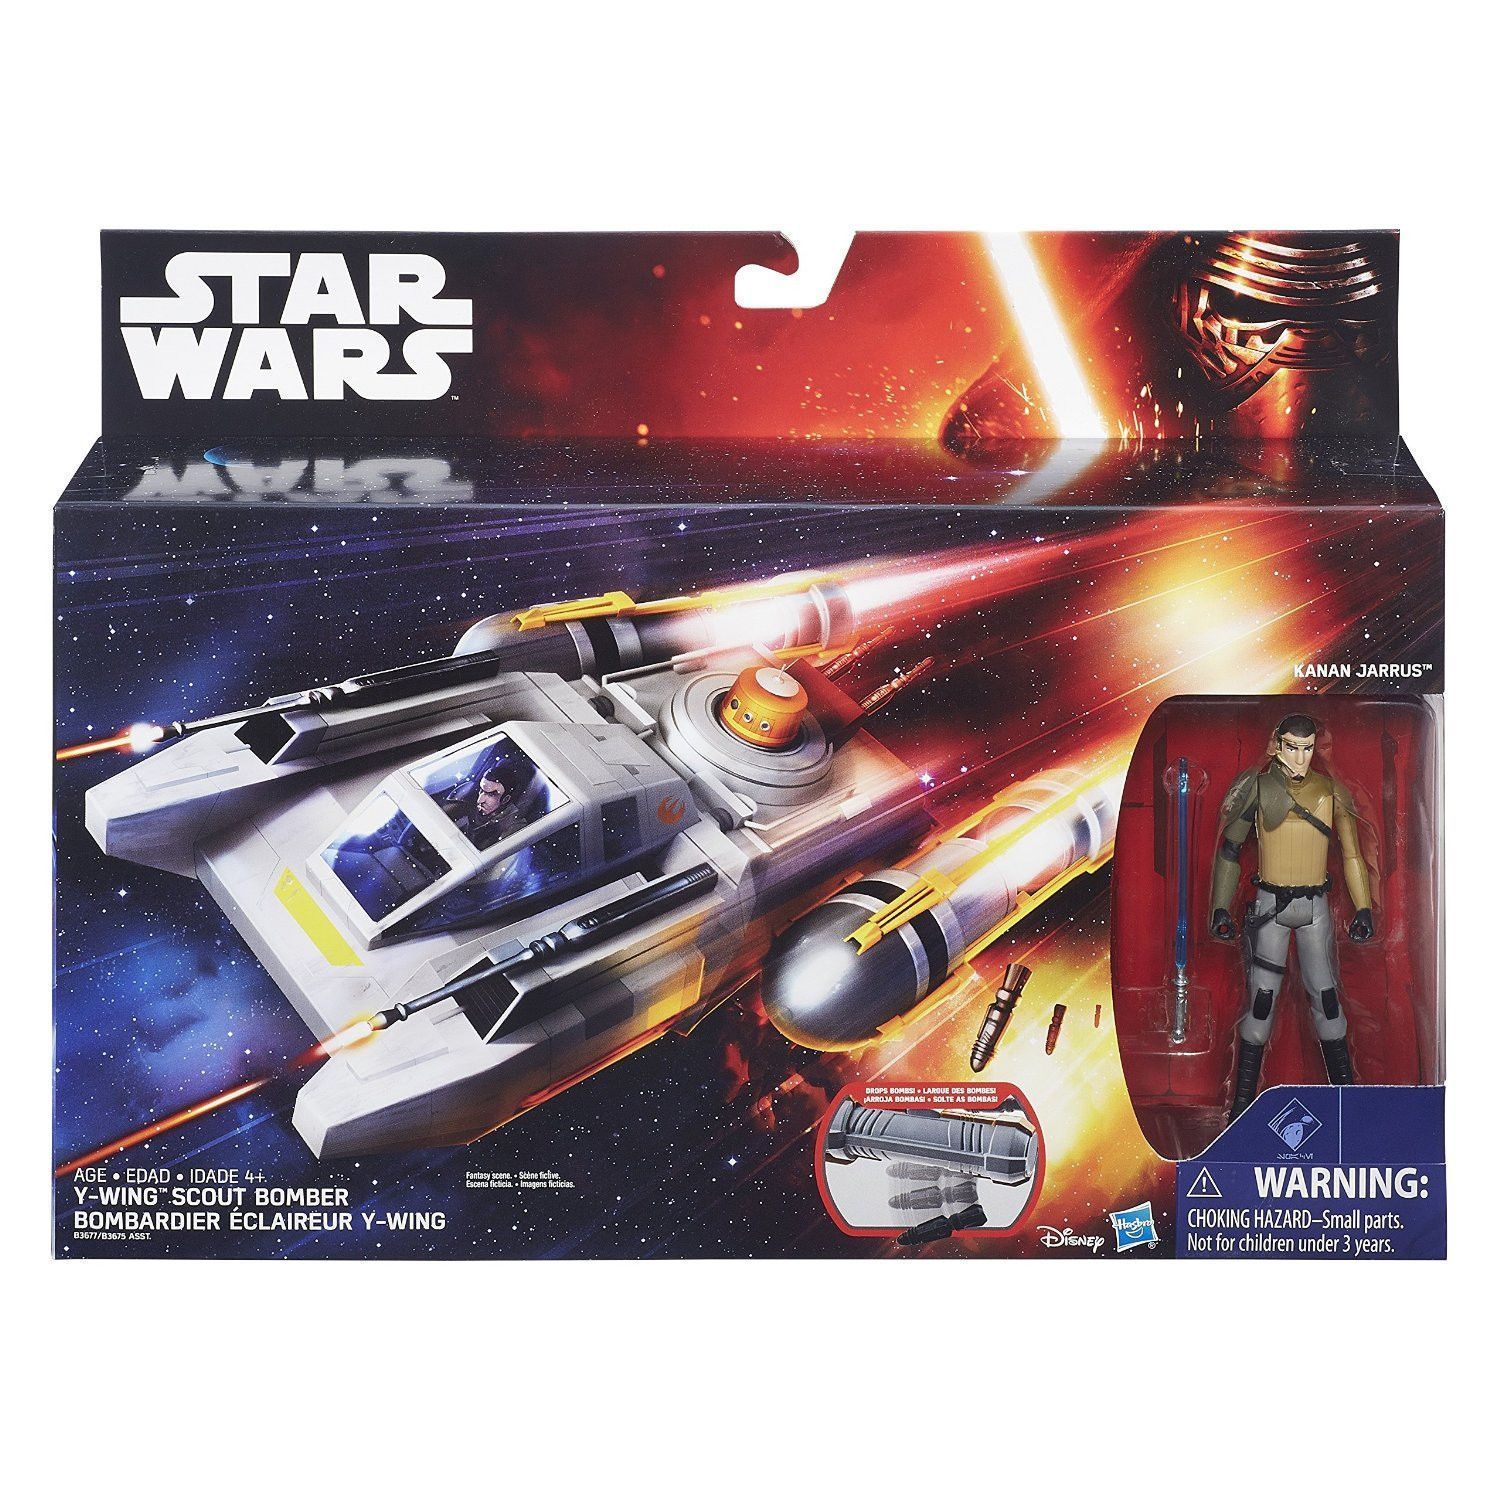 Star Wars Y-wing SCOUT BOMBER avec CLONE TROOPER pilote Véhicule et Figurine